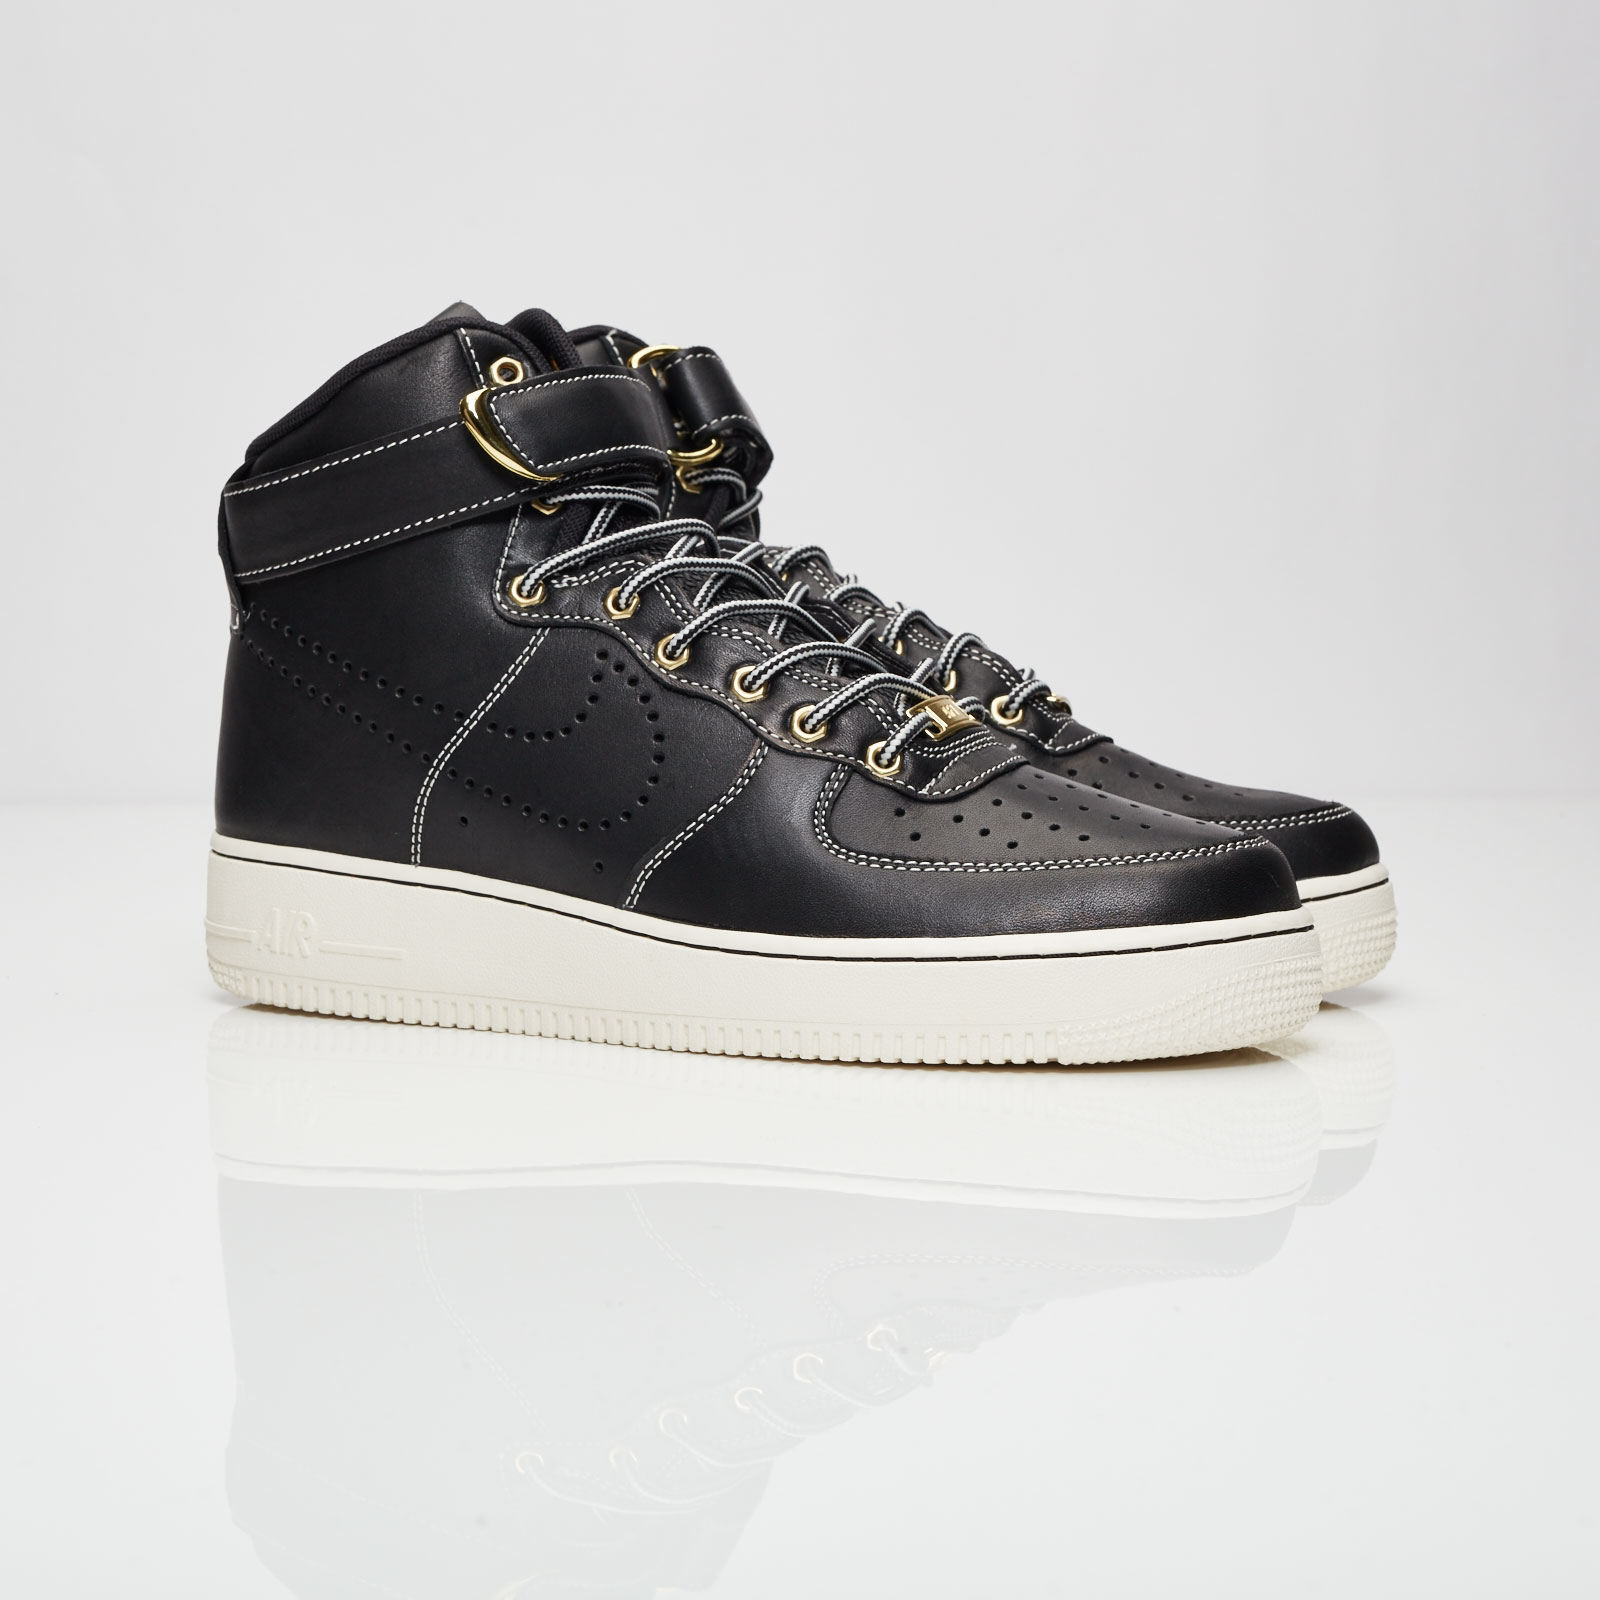 a5fbc394fba Nike Air Force 1 High 07 LV8 WB - 882096-001 - Sneakersnstuff ...